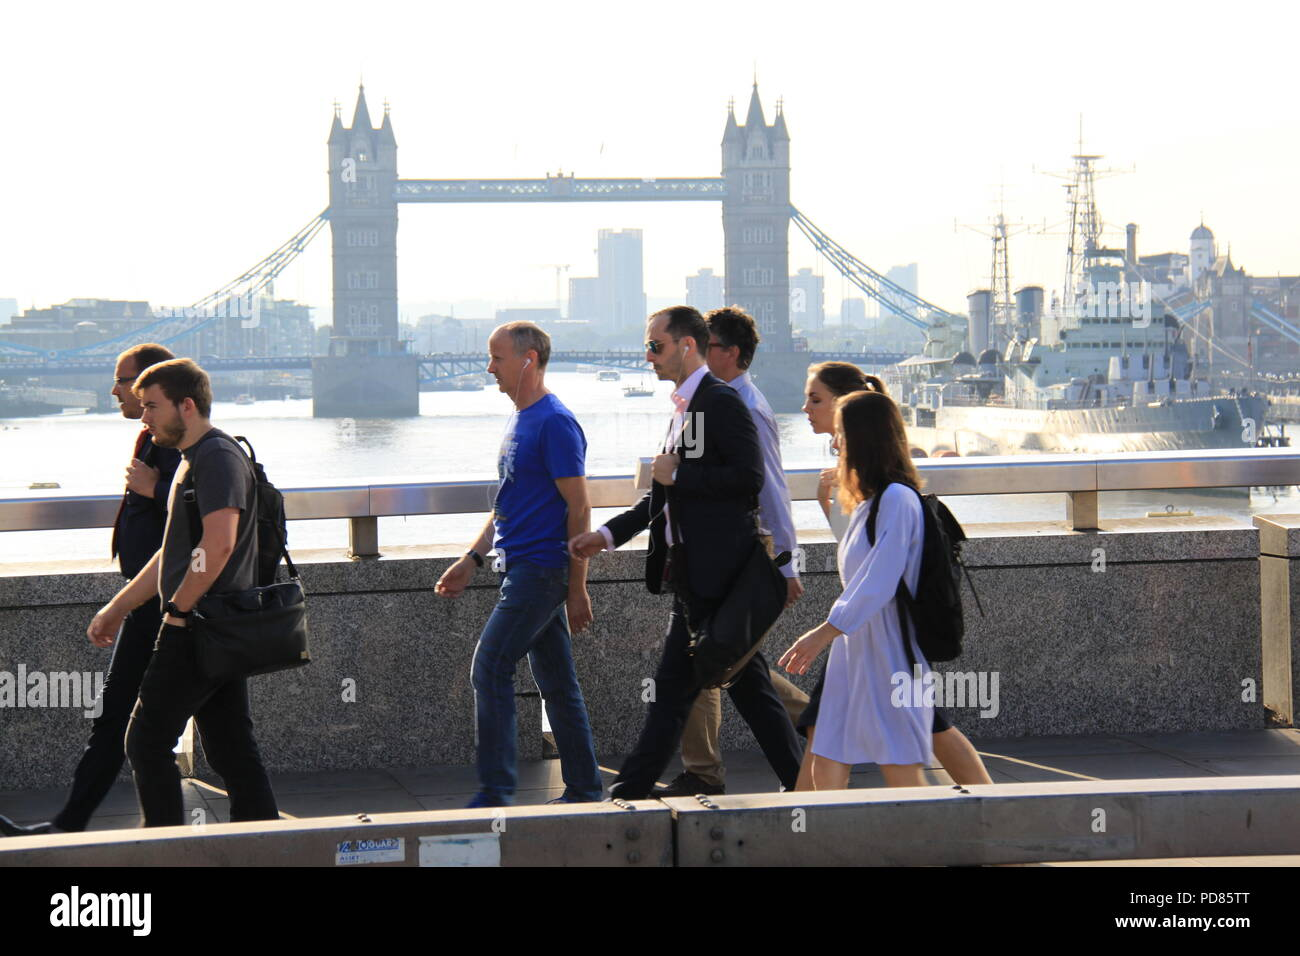 London Bridge, London, UK. 7th August 2018. UK Weather: On a another day expected to be 33C, office workers walk to work into the city of London across London Bridge. Credit: PETER GRANT/Alamy Live News. - Stock Image